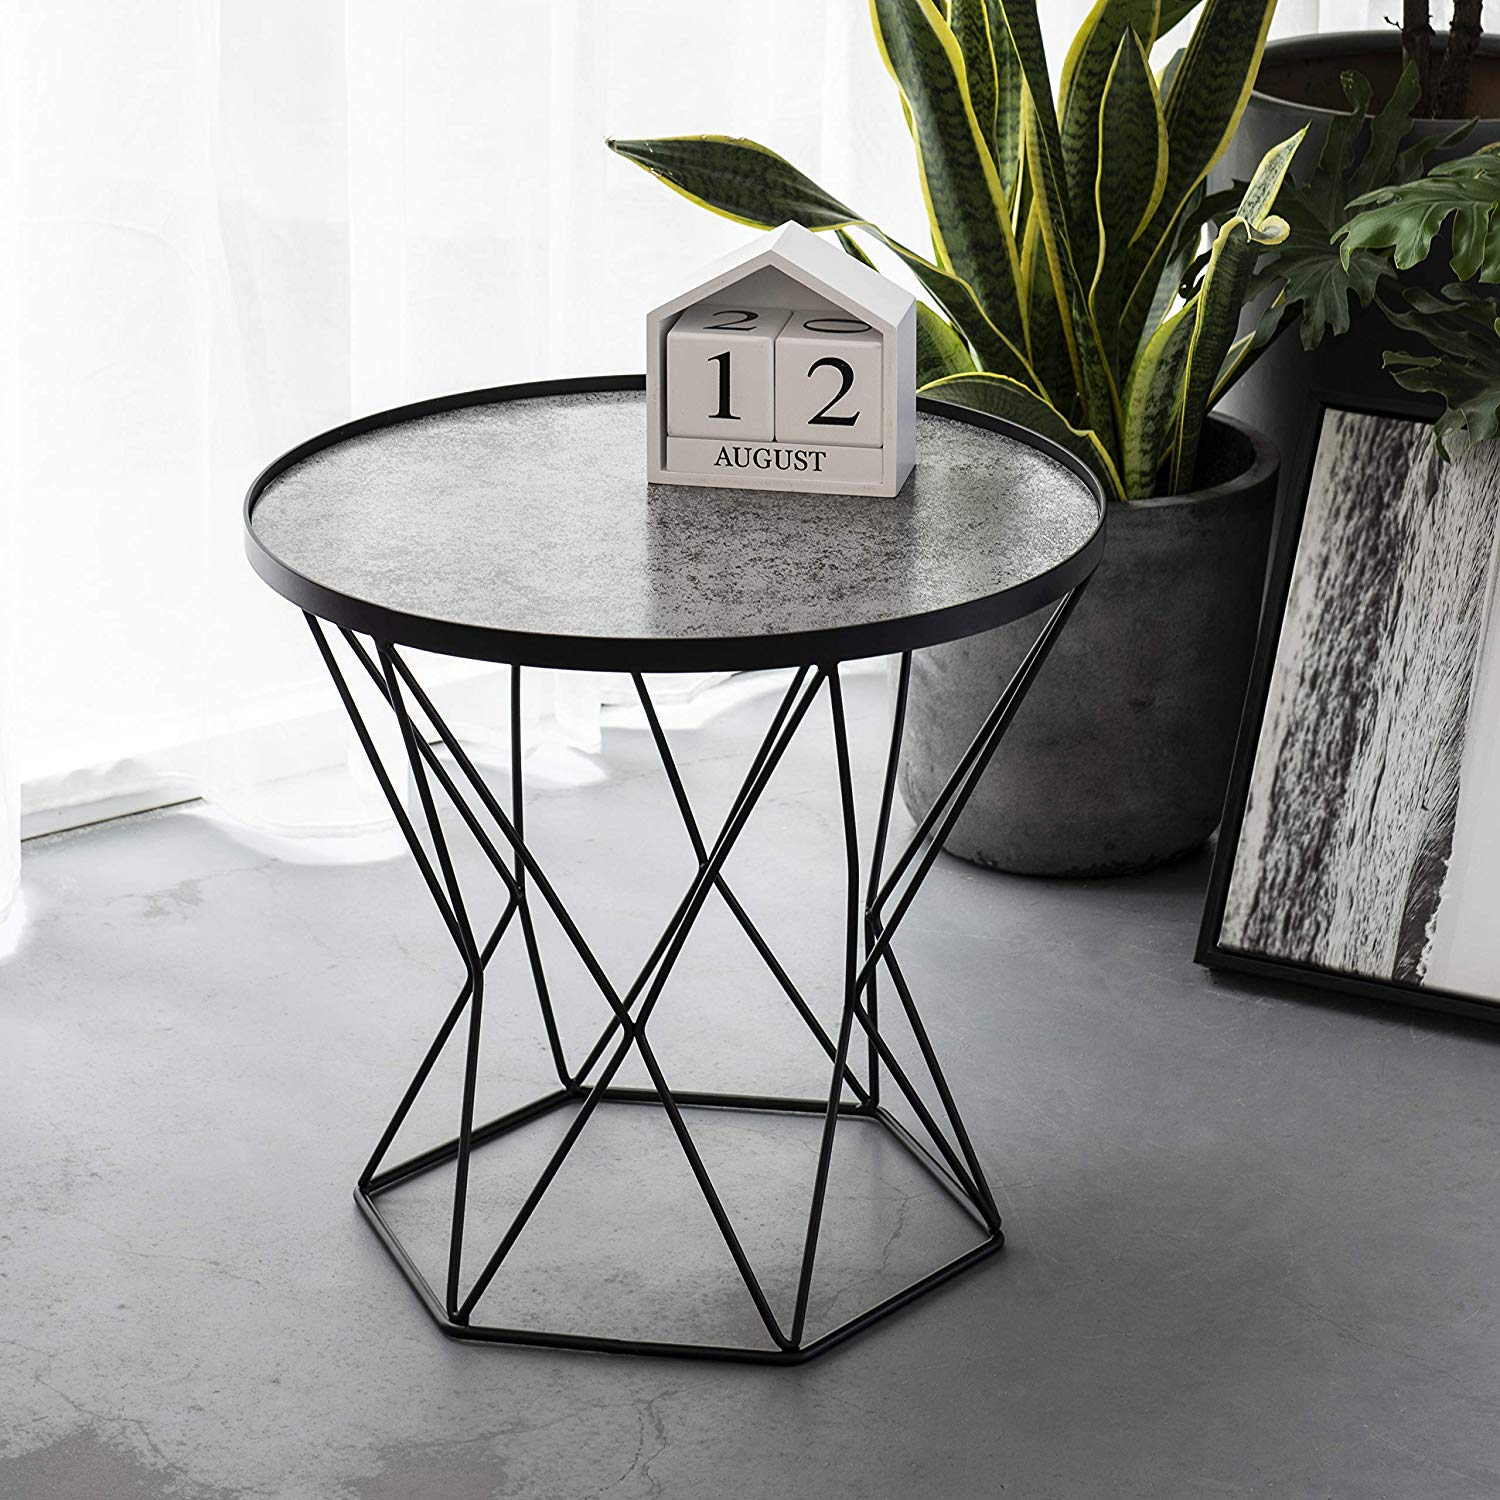 art leon small round end table modern glass top with coffee tables metal frame side for living room bedroom deck patio garden kitchen white black inch offers laura ashley